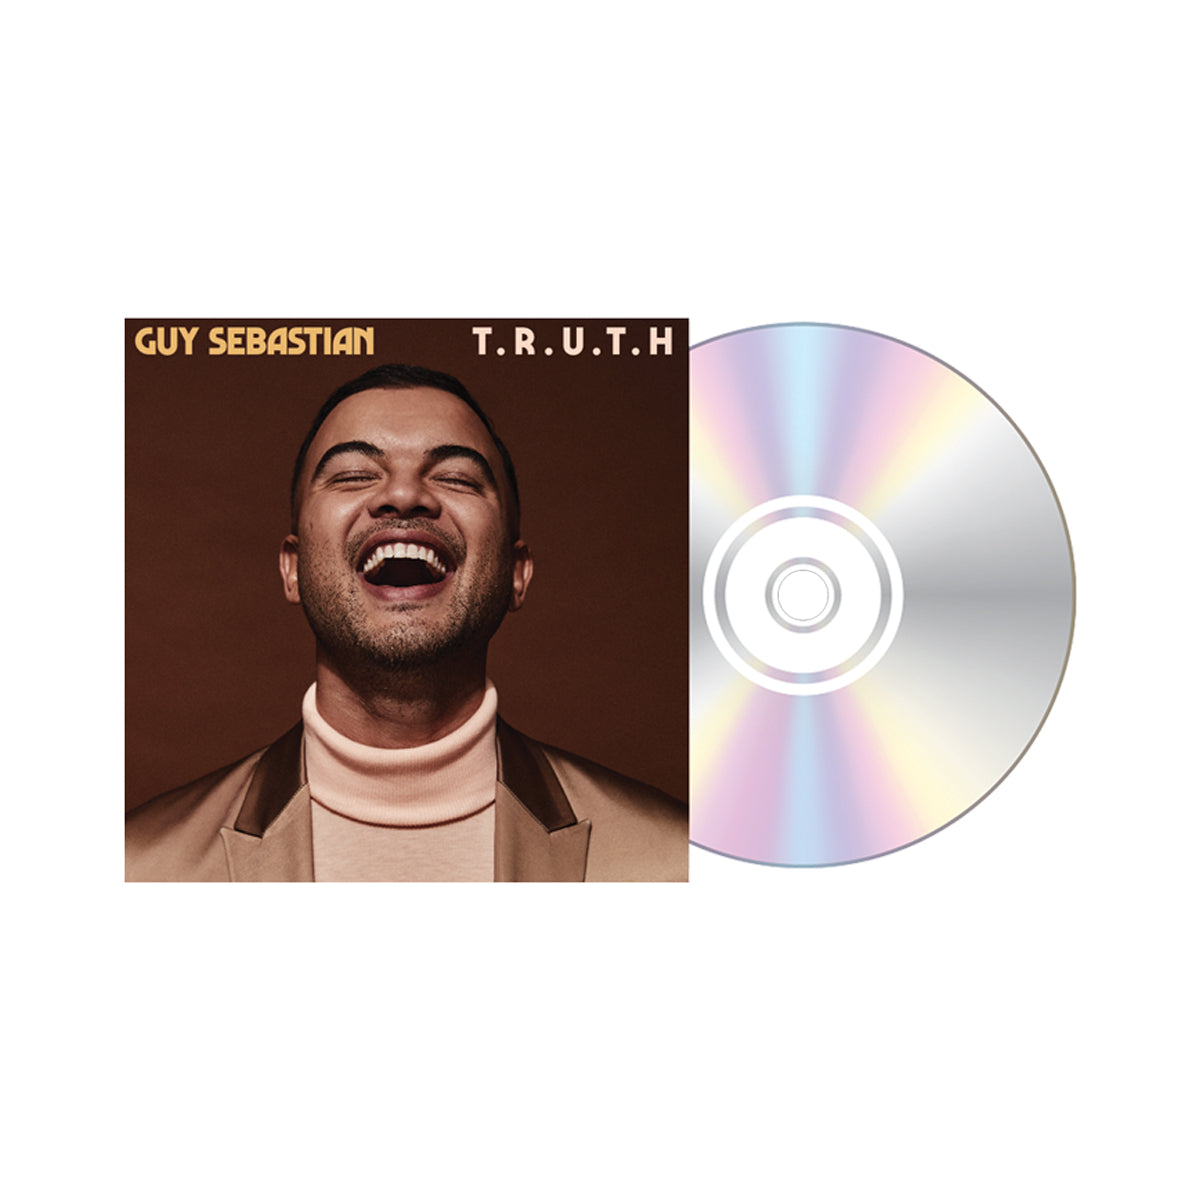 Guy Sebastian - T.R.U.T.H. CD